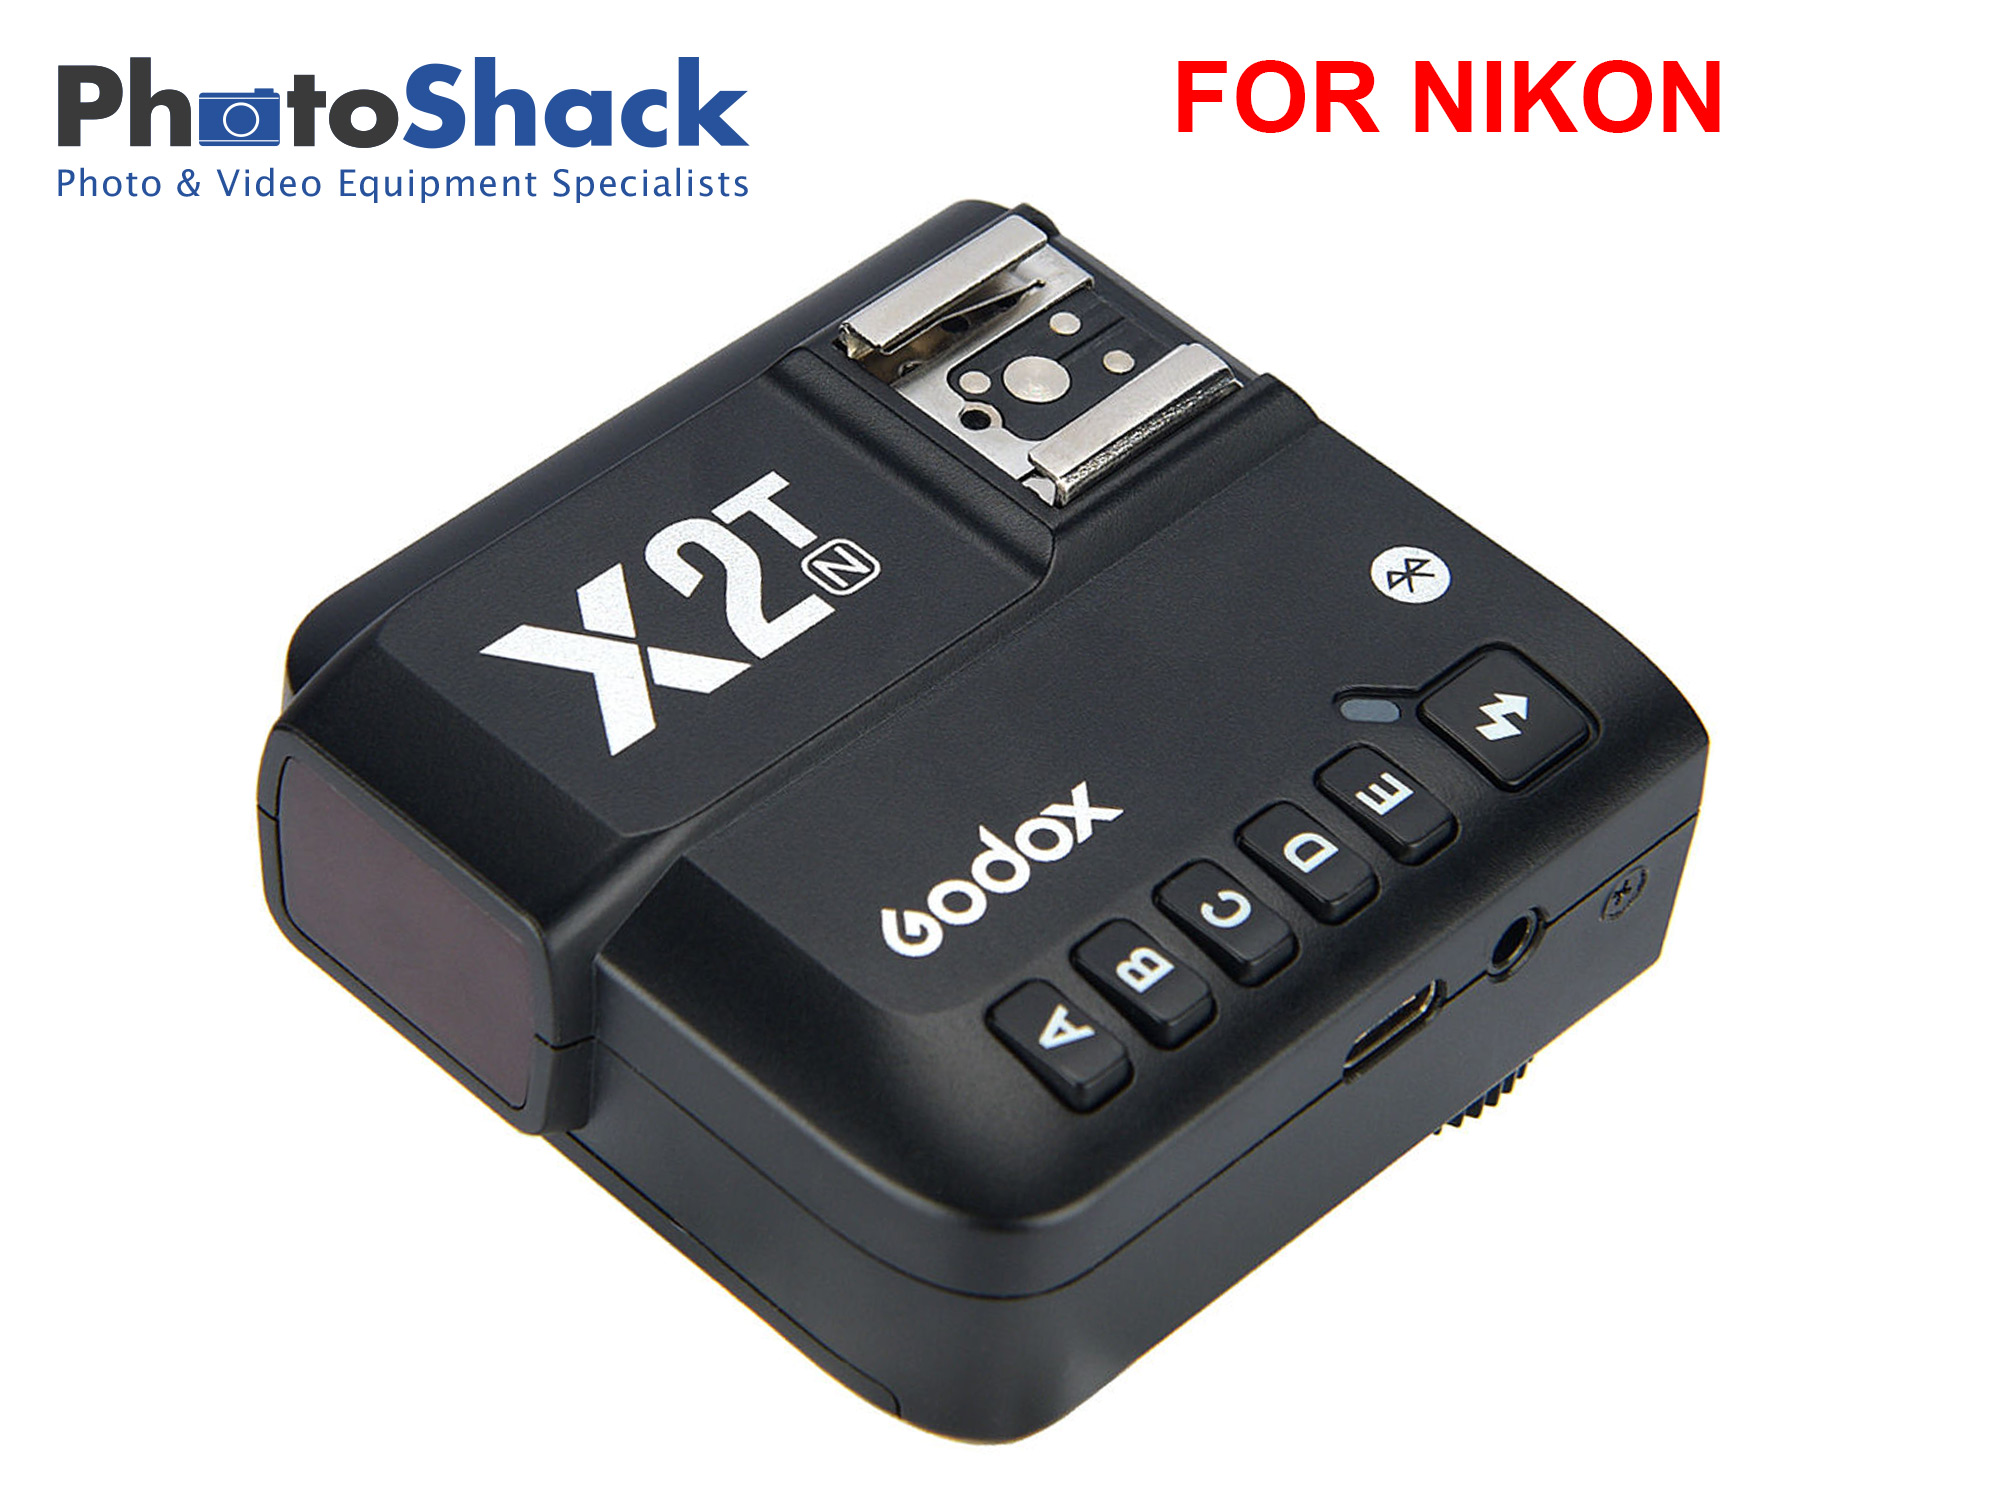 Godox X2T 2.4 GHz TTL Wireless Flash Trigger for Nikon